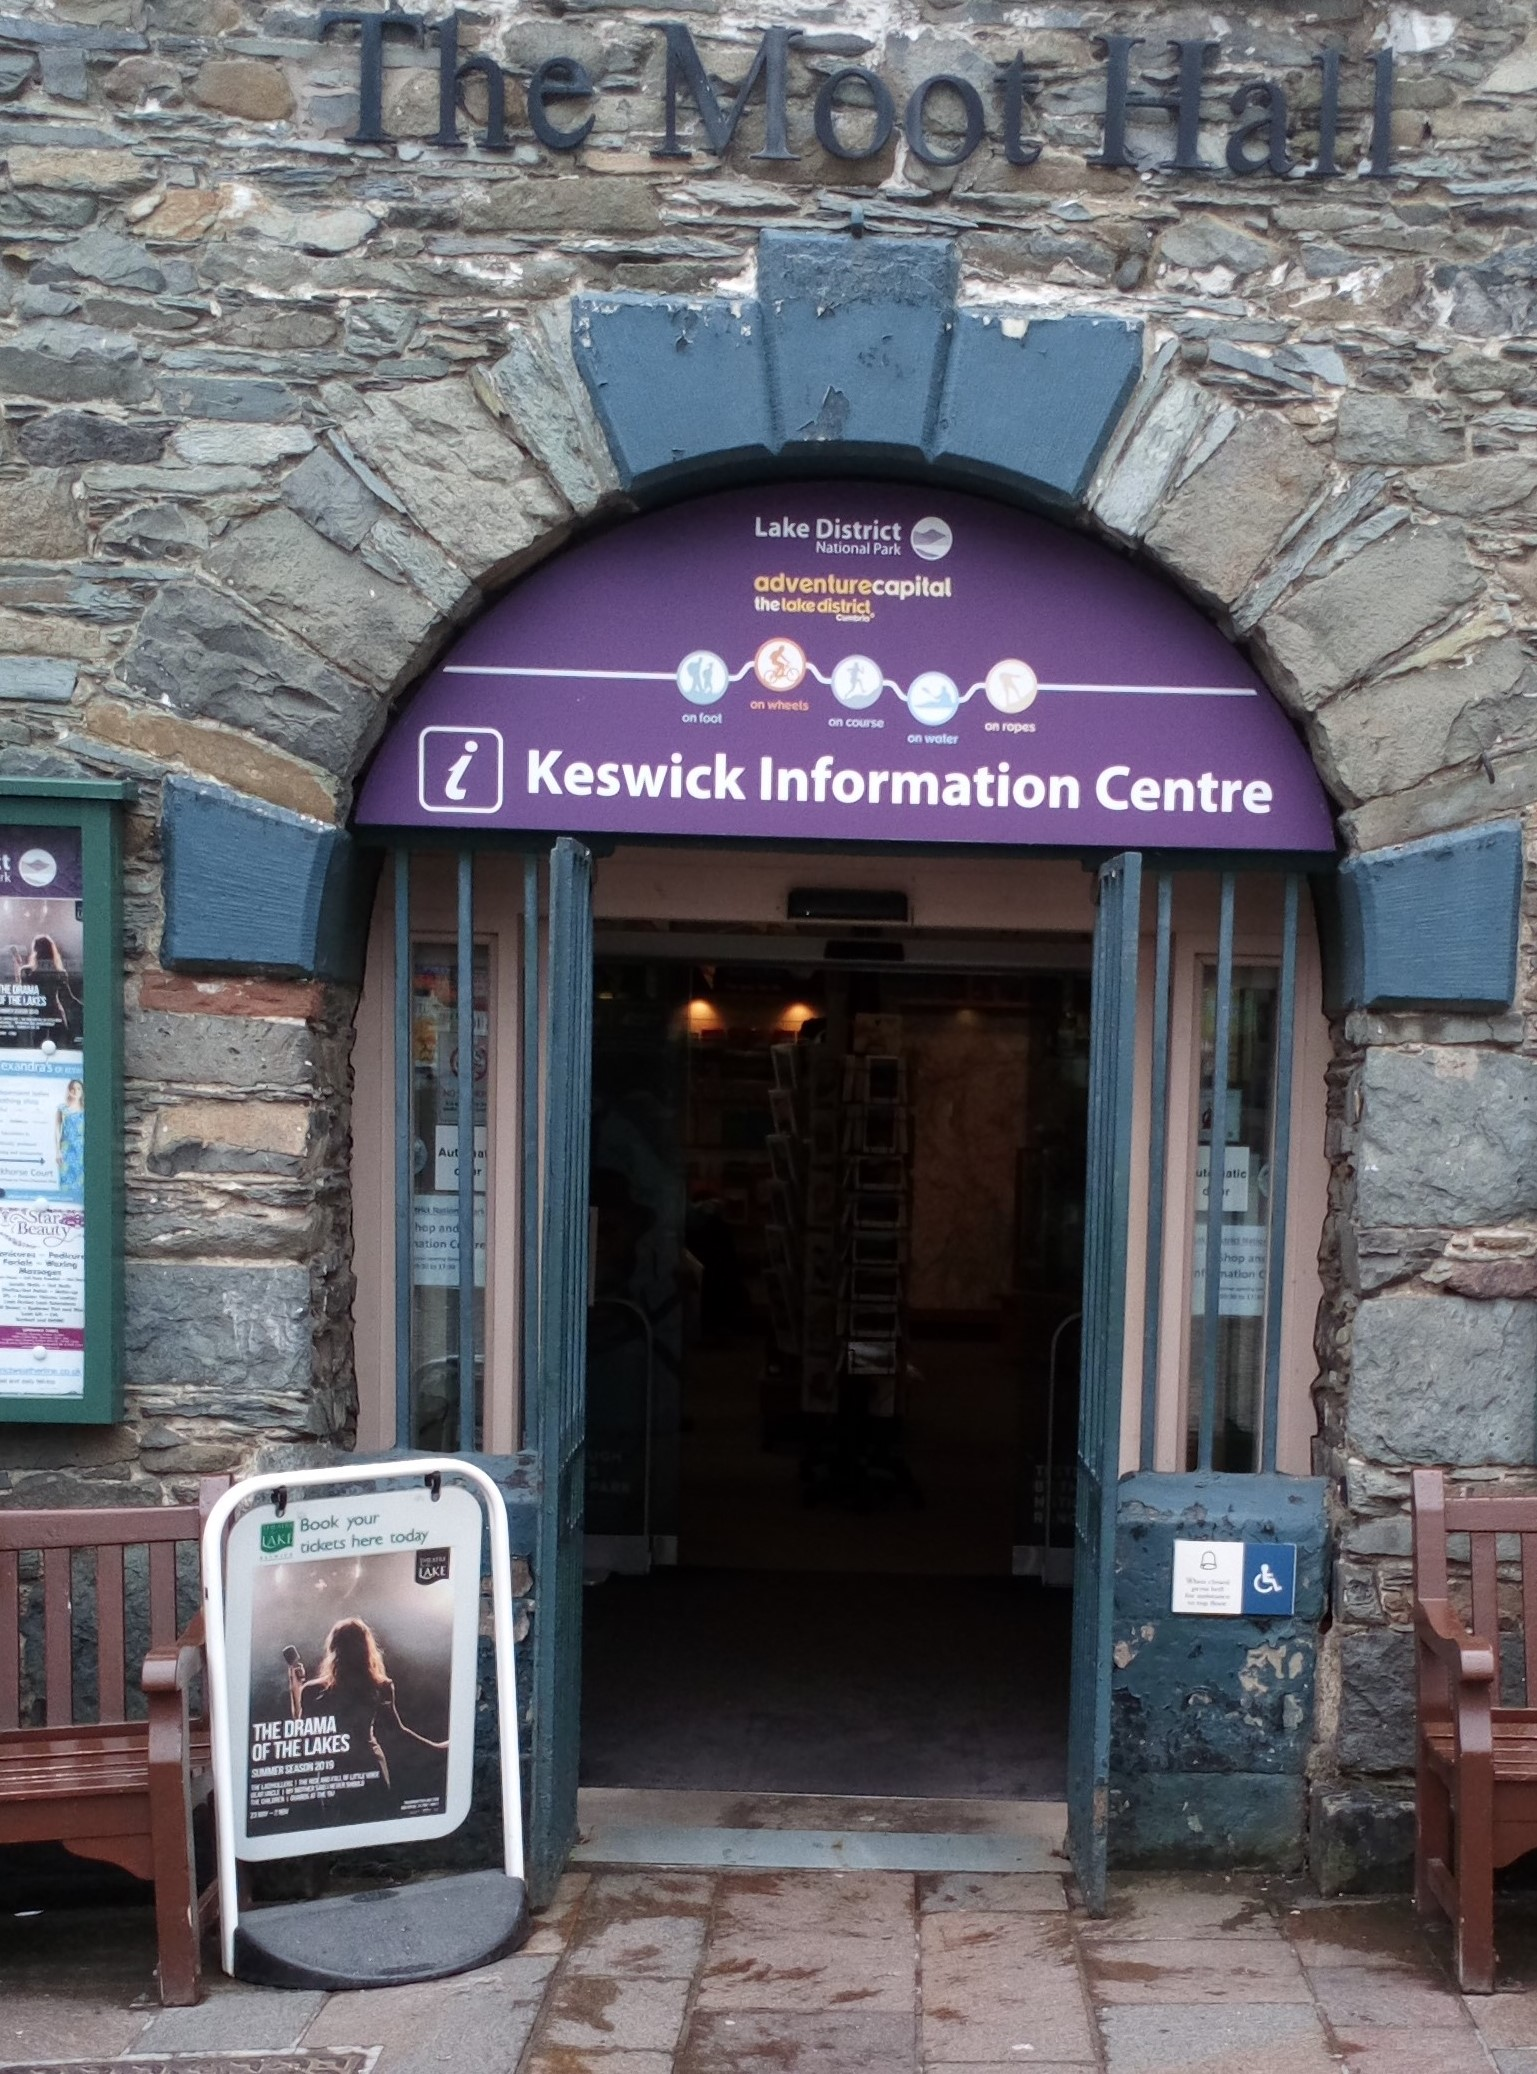 Keswick Tourist Information Centre   The Keswick Tourist Information Centre provides information on what to see and do, entertainments and events, places of interest, travel and transport, and where to stay. It also has information on local accommodation.  The TIC is also a Friend of Keswick and supports the Lake District Pound.  Moot Hall, Keswick, CA12 5JR  0845 901 0845 (calls cost 2p per minute plus your phone company's access charge)